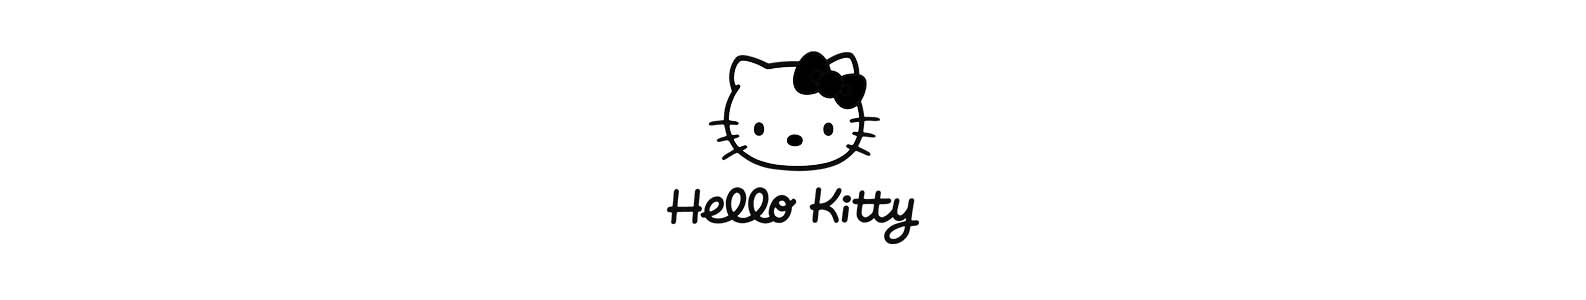 Hello Kitty brand header image